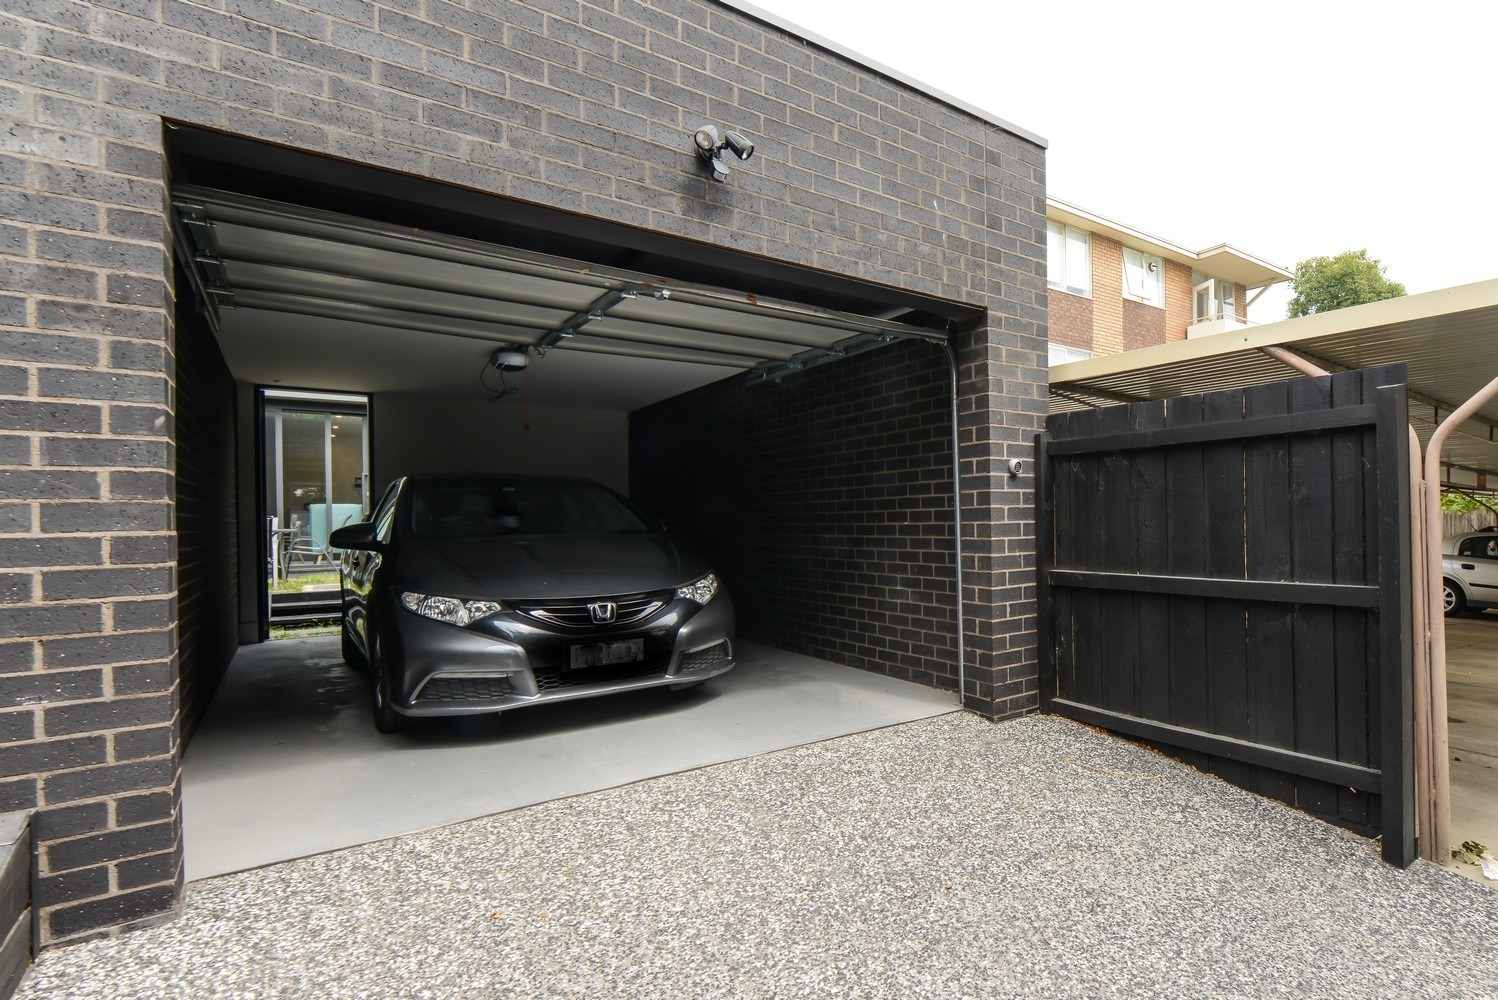 Garage at Victoria Road Townhouse